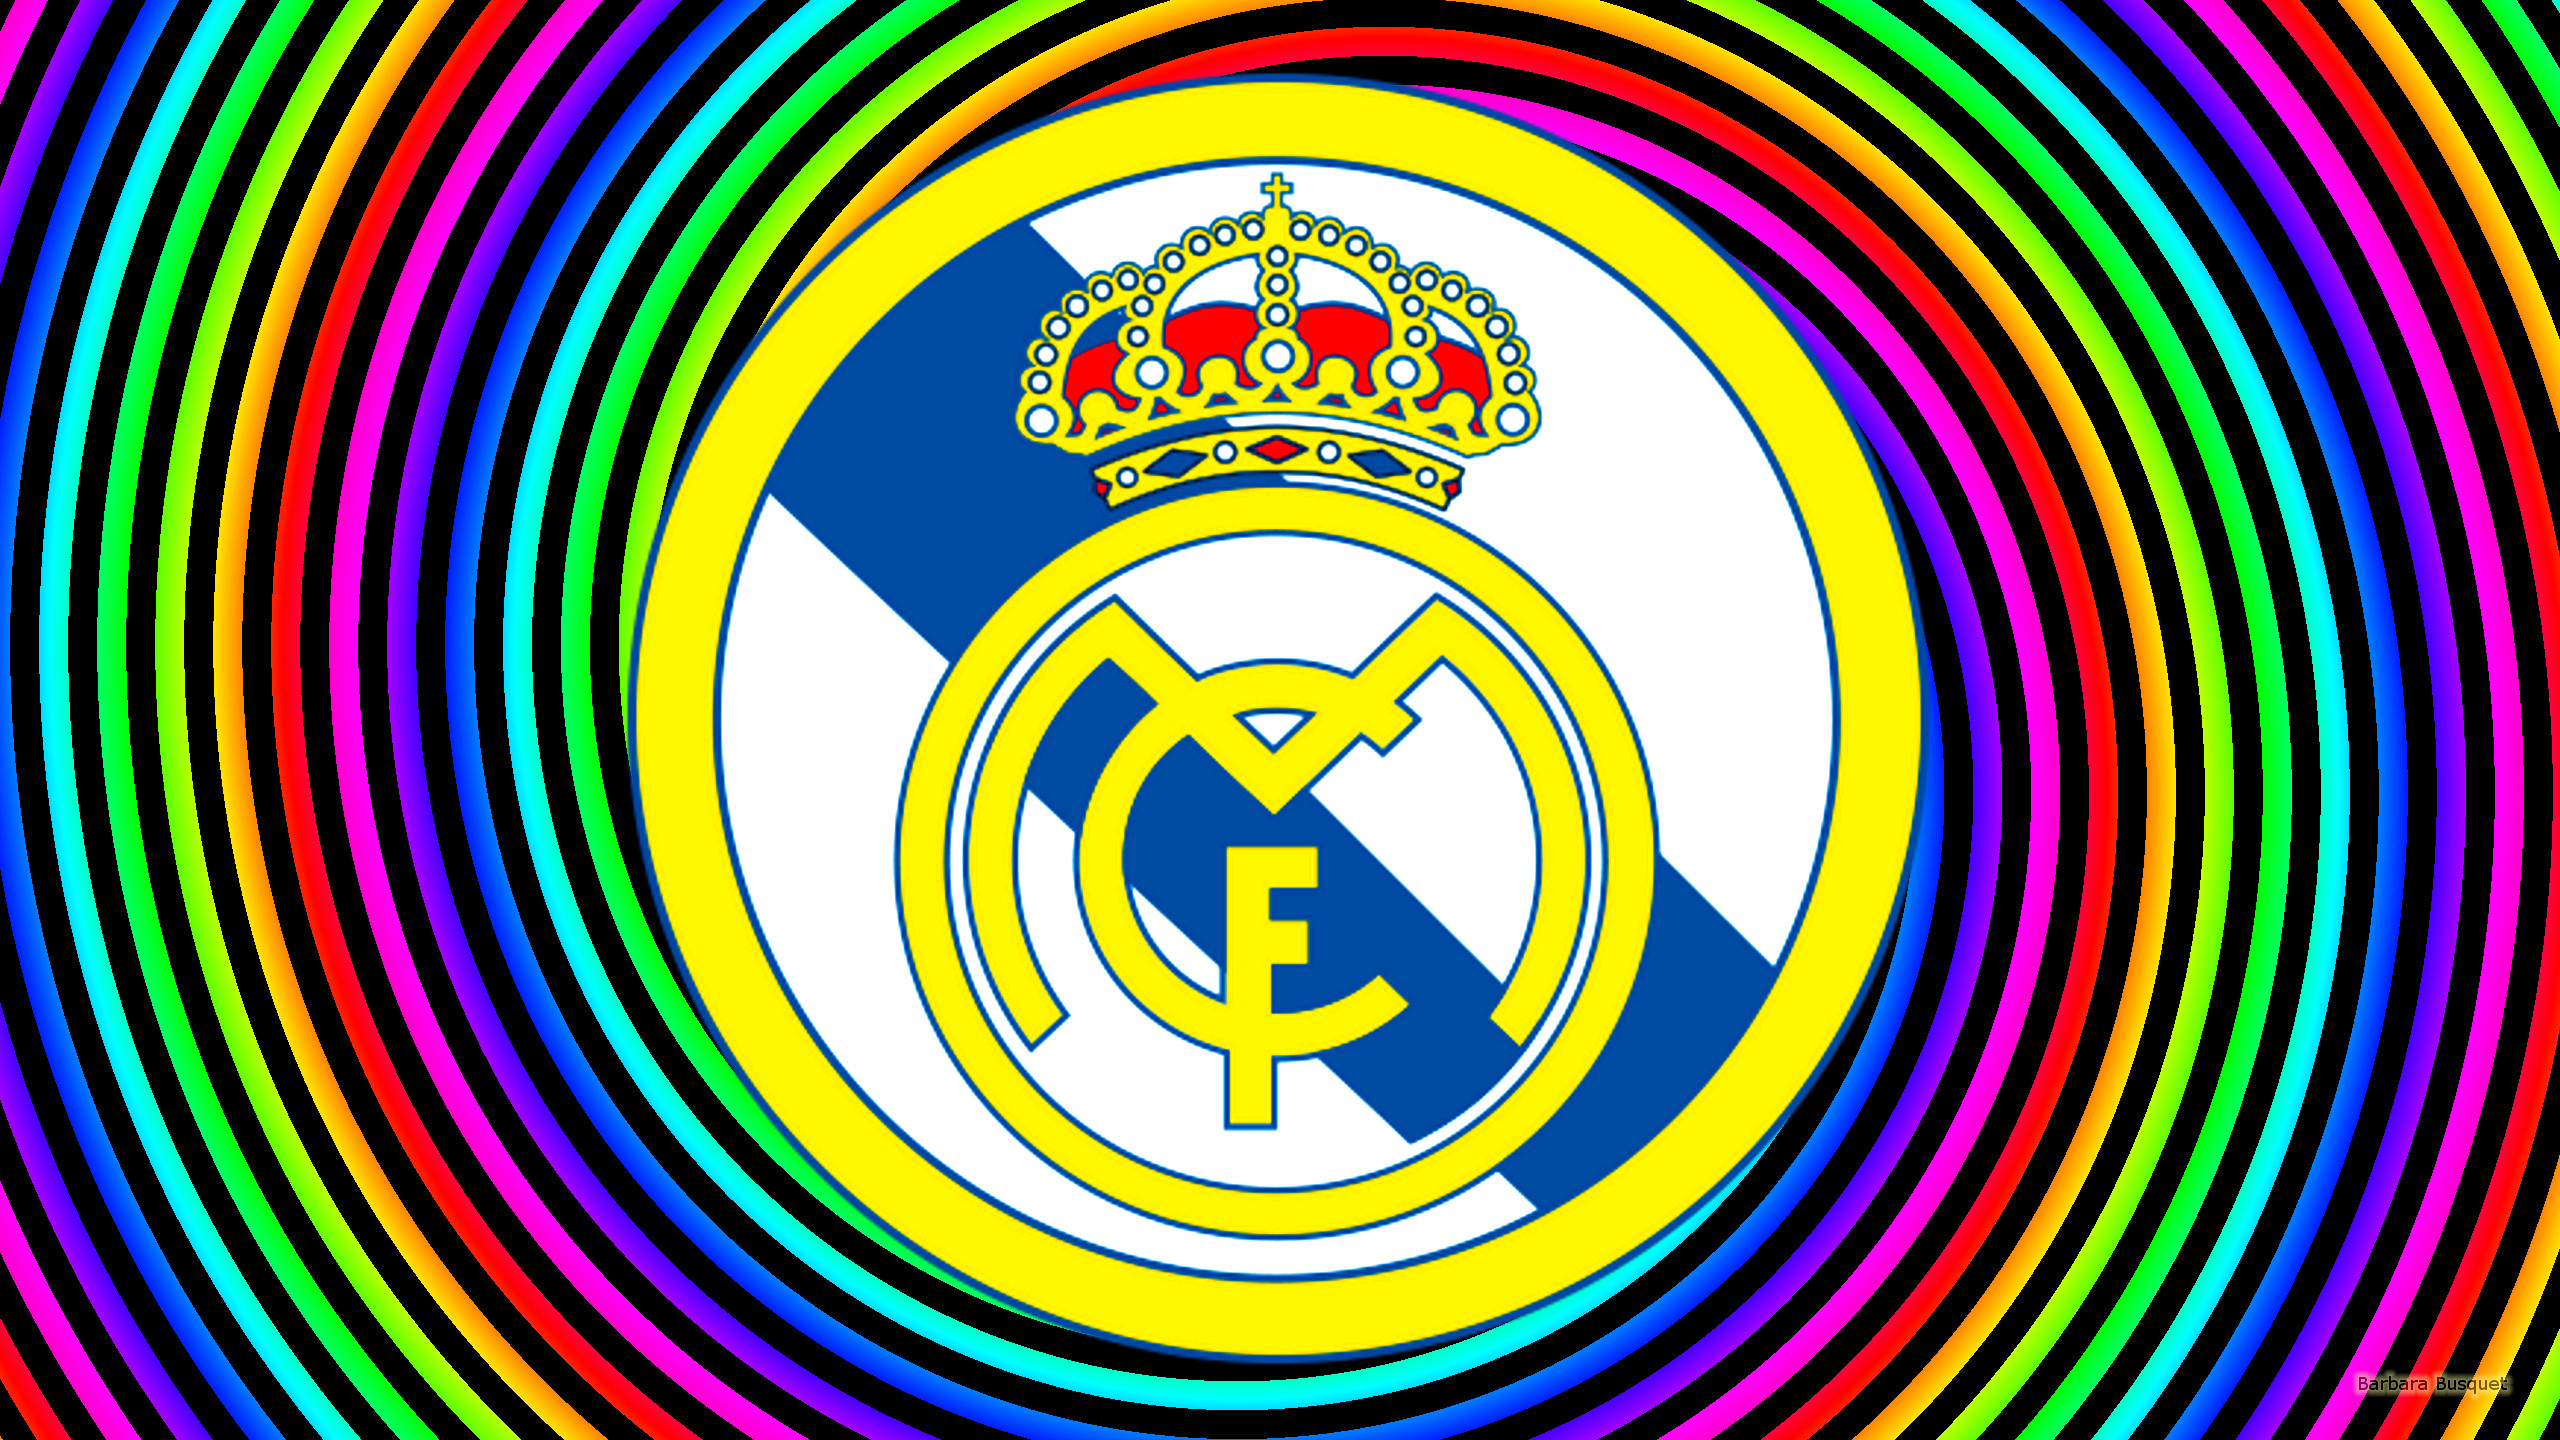 Real Madrid Wallpaper With Spirals In Rainbow Colors